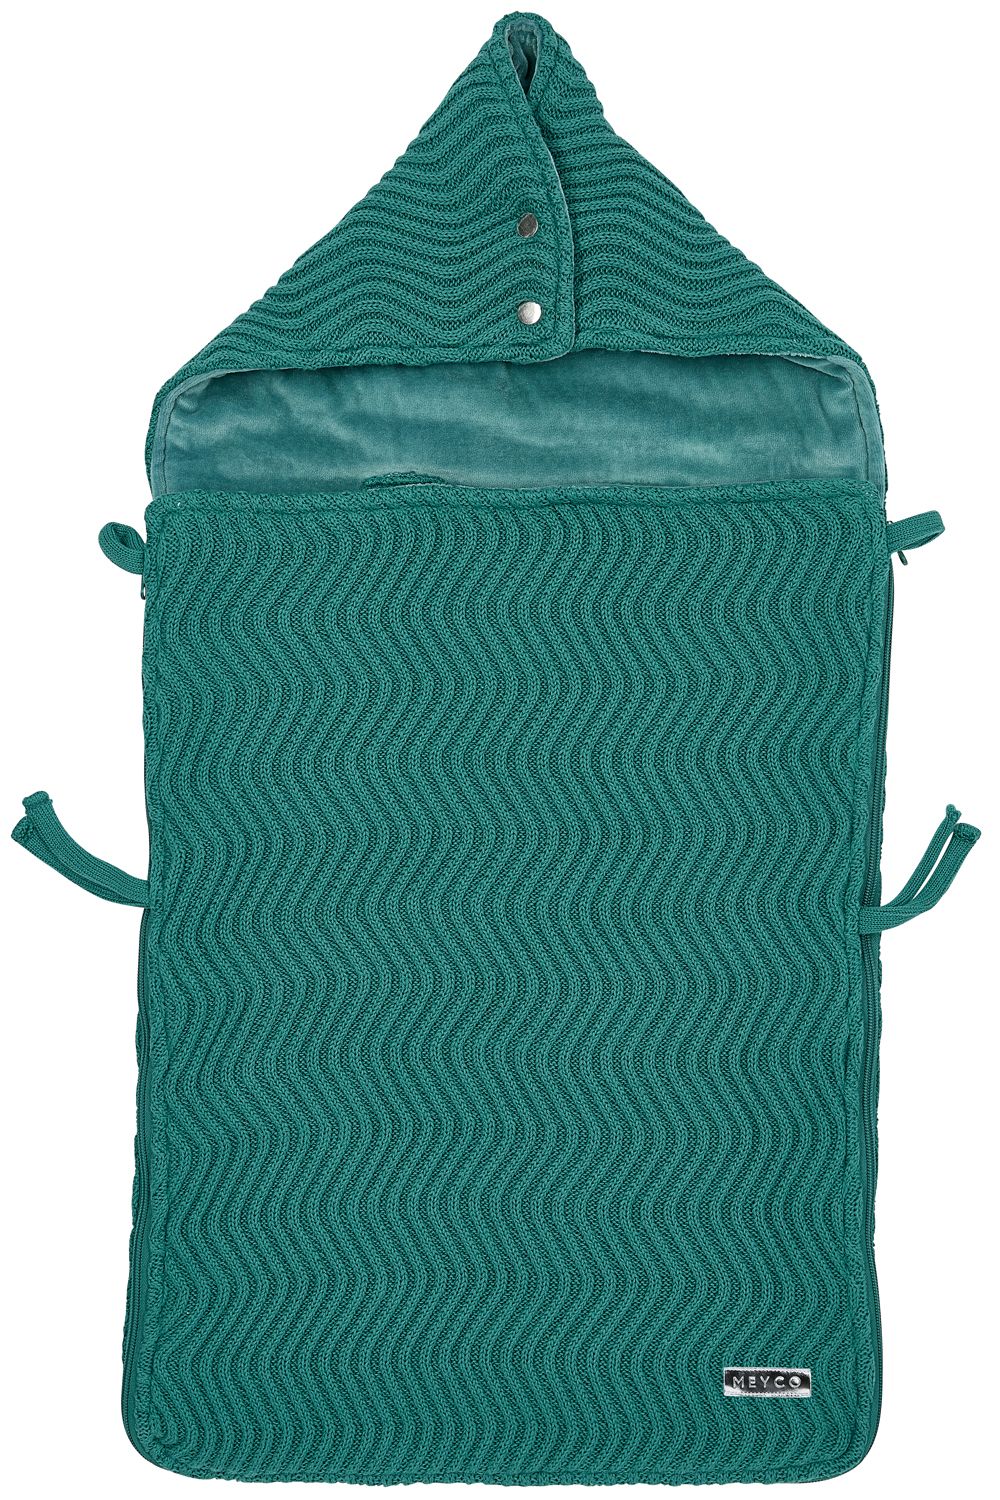 Fußsack The Waves - Emerald Green - 40x82cm